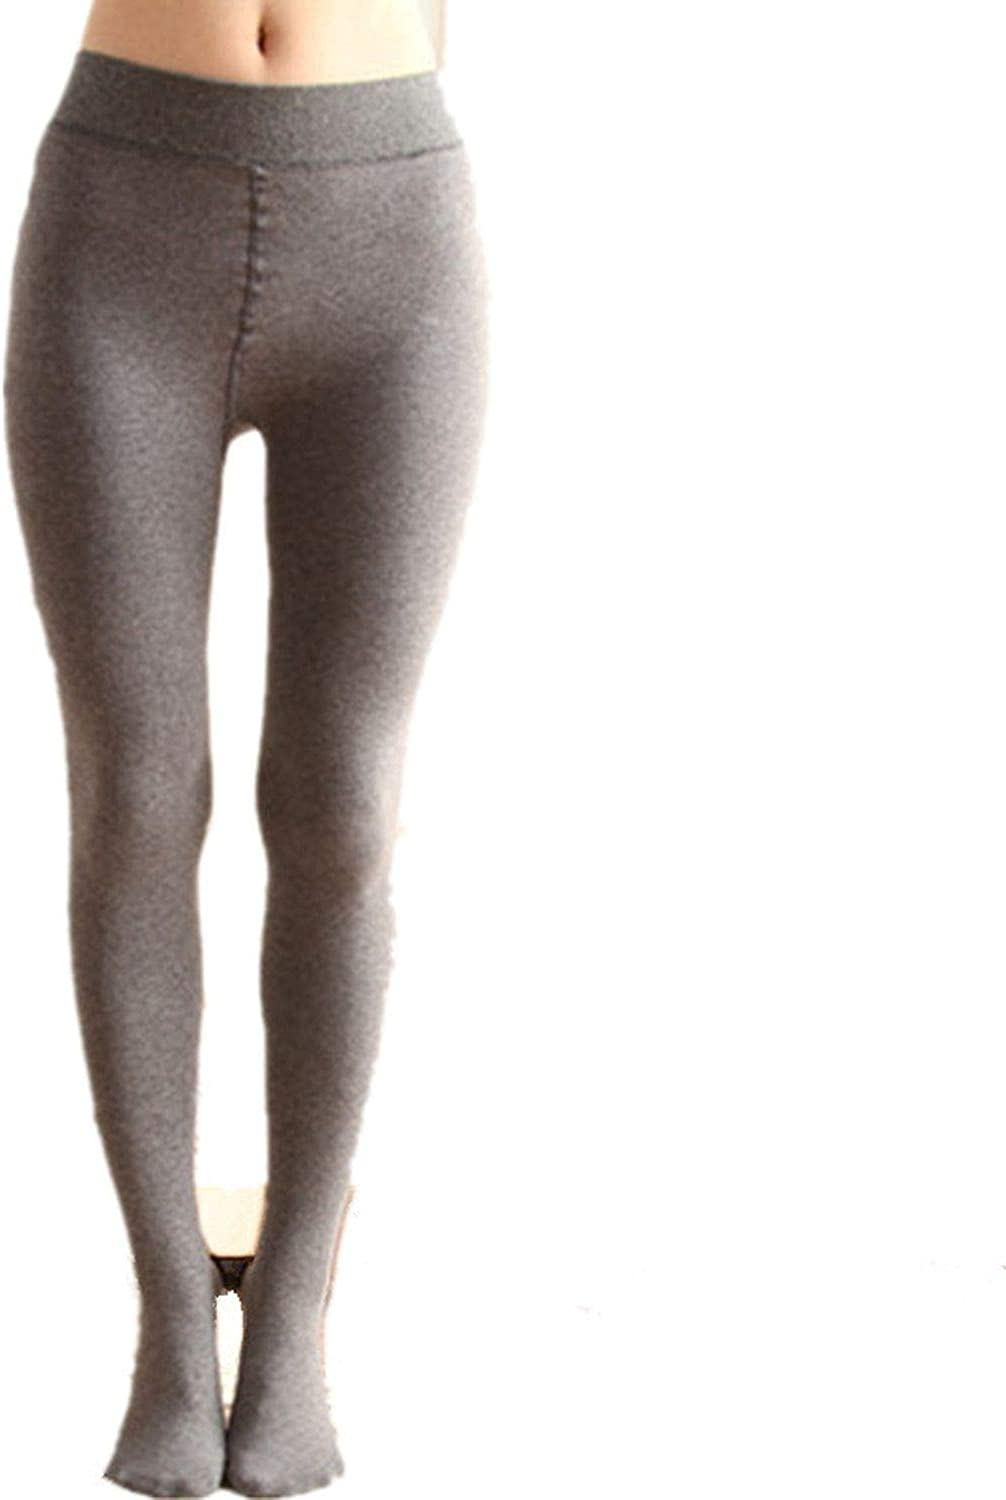 NA Winter Tights Legs Pantyhose Thin Cashmere Keep Warm Tights Women Pantys